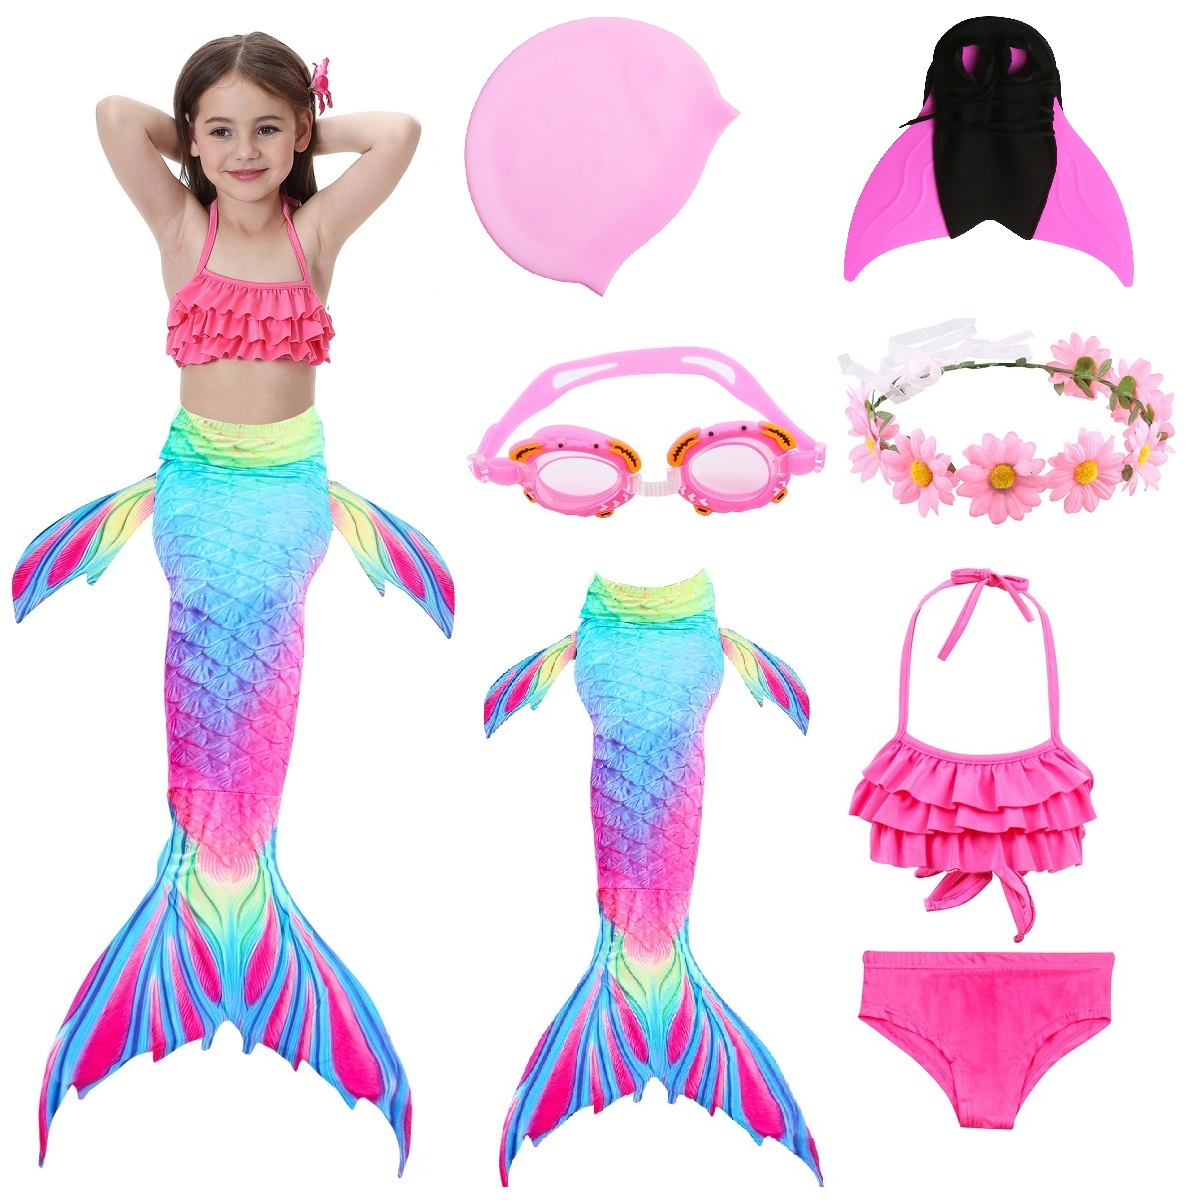 Kids Mermaid Swimsuit Bikini Girls Mermaid Tail with Finned Swimsuit Child's Wear Split Swimsuit Mermaid Tail Clothing Swimwear-in Girls Costumes from Novelty & Special Use